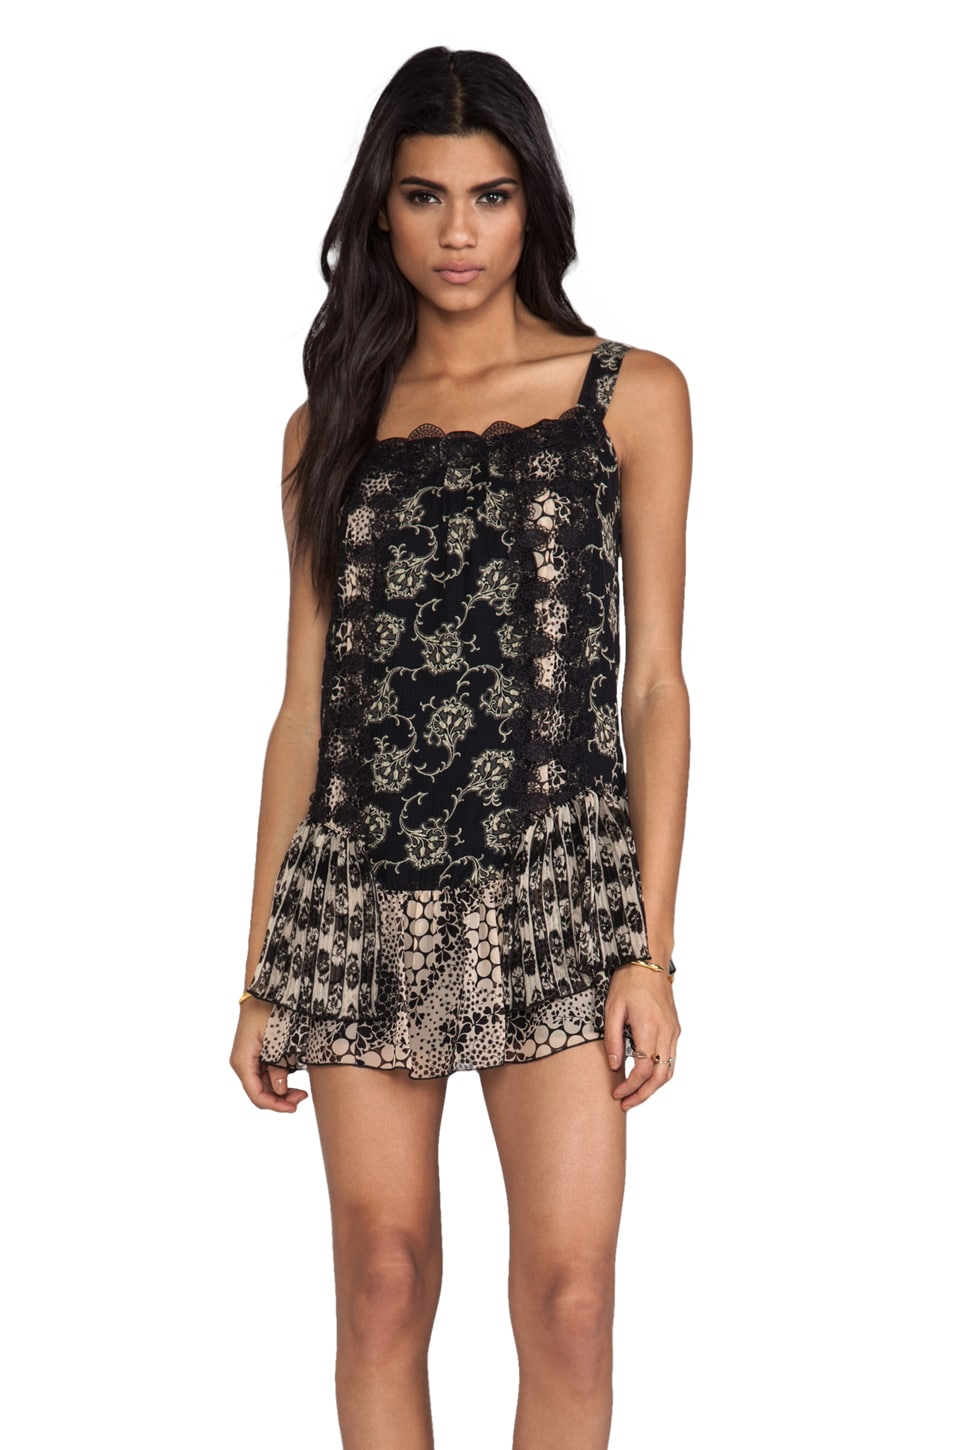 Anna Sui Madeleine Mixed Prints Lace Dress in Black Multi